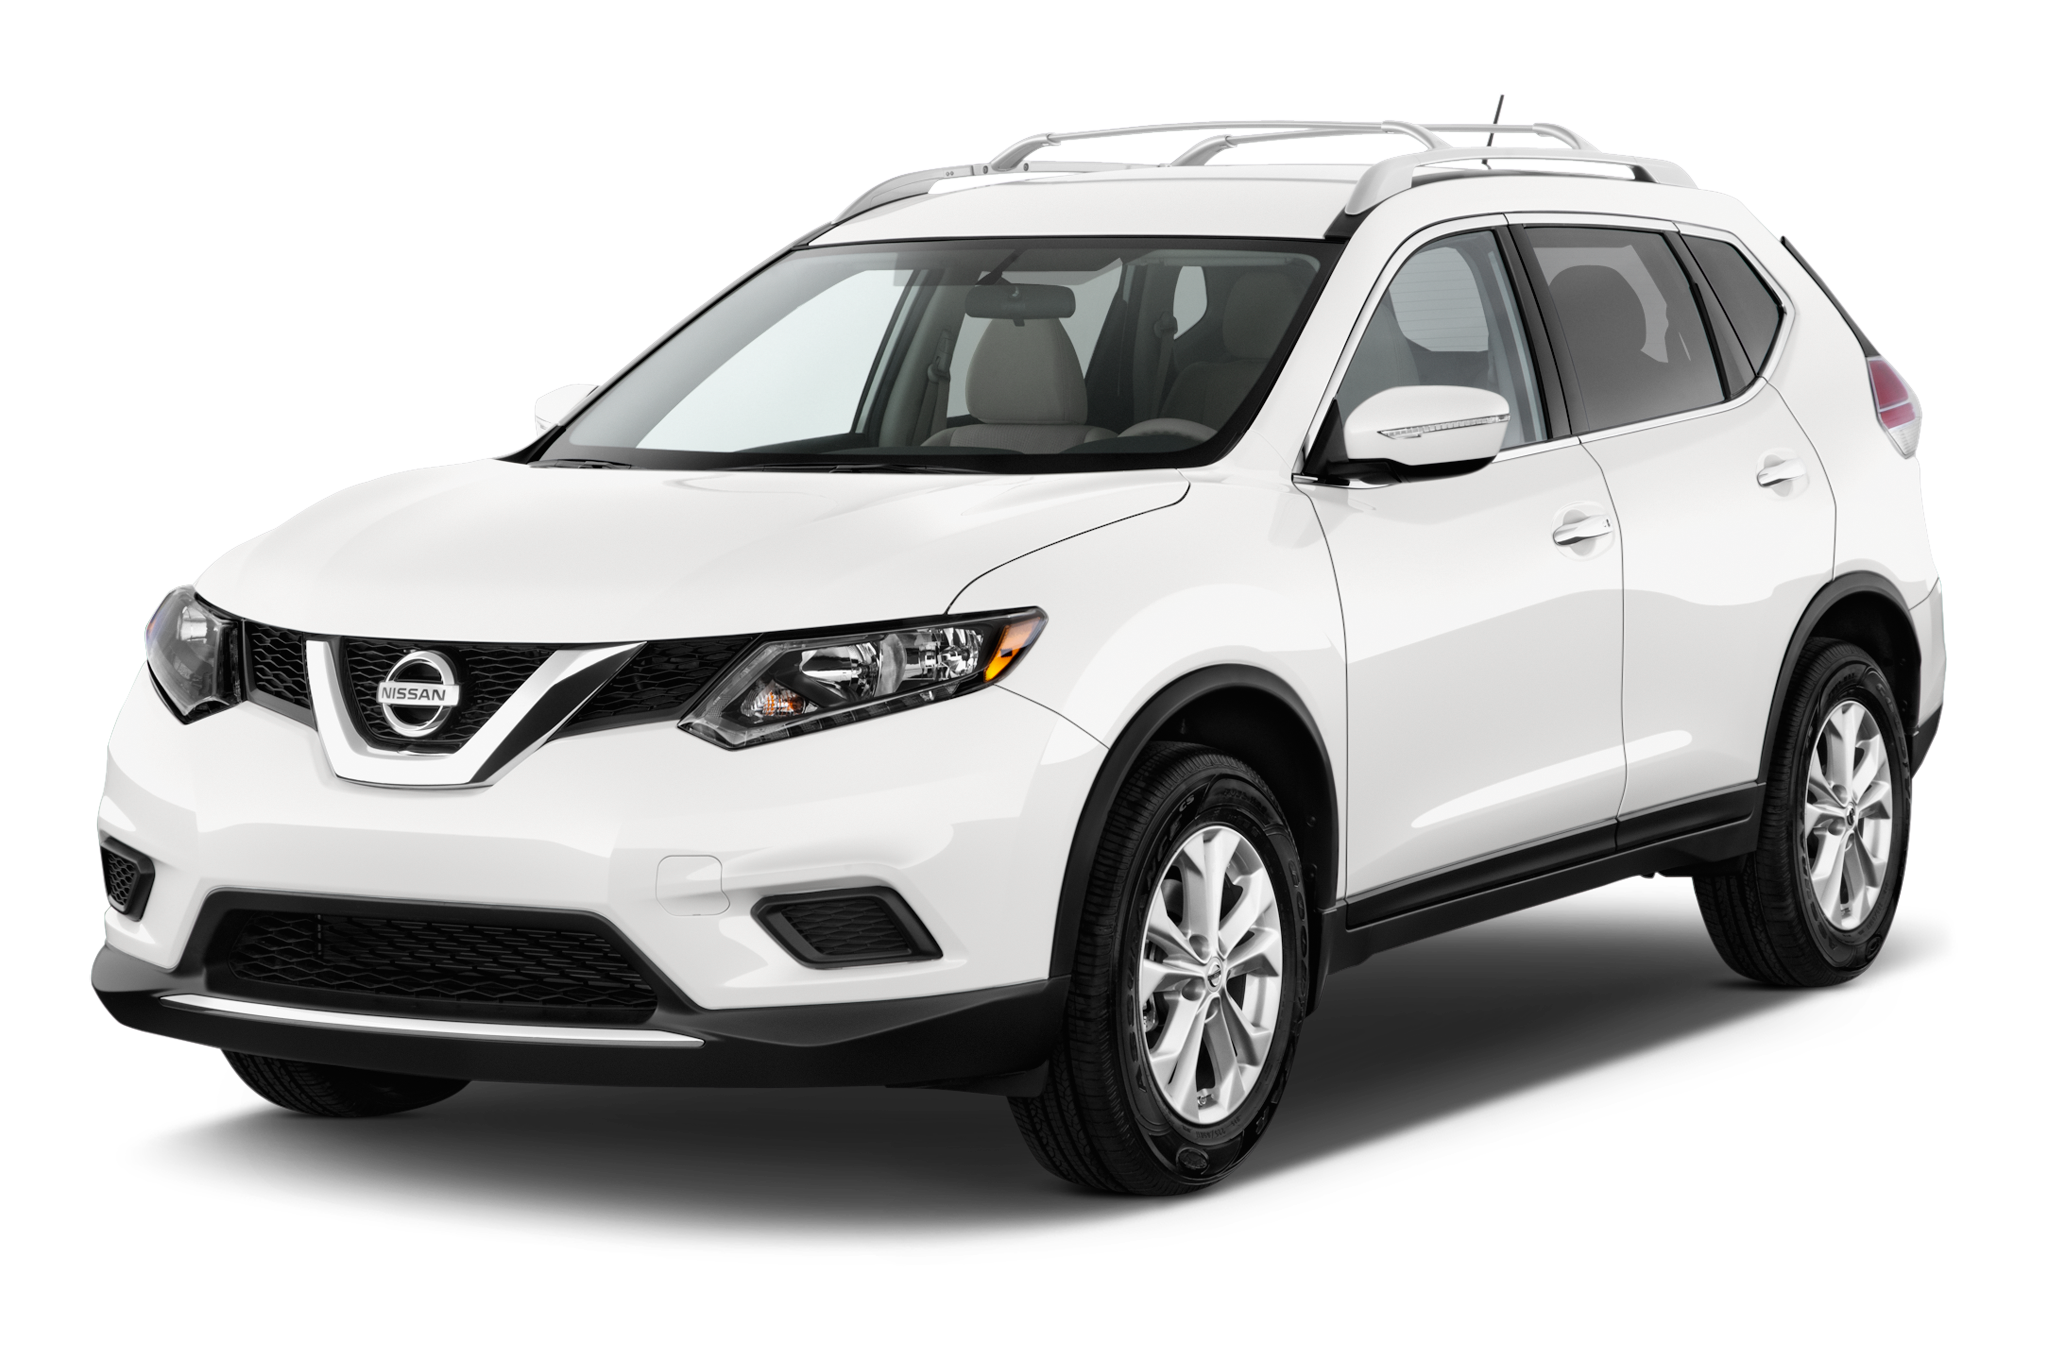 2018 nissan rogue emporium auto lease. Black Bedroom Furniture Sets. Home Design Ideas